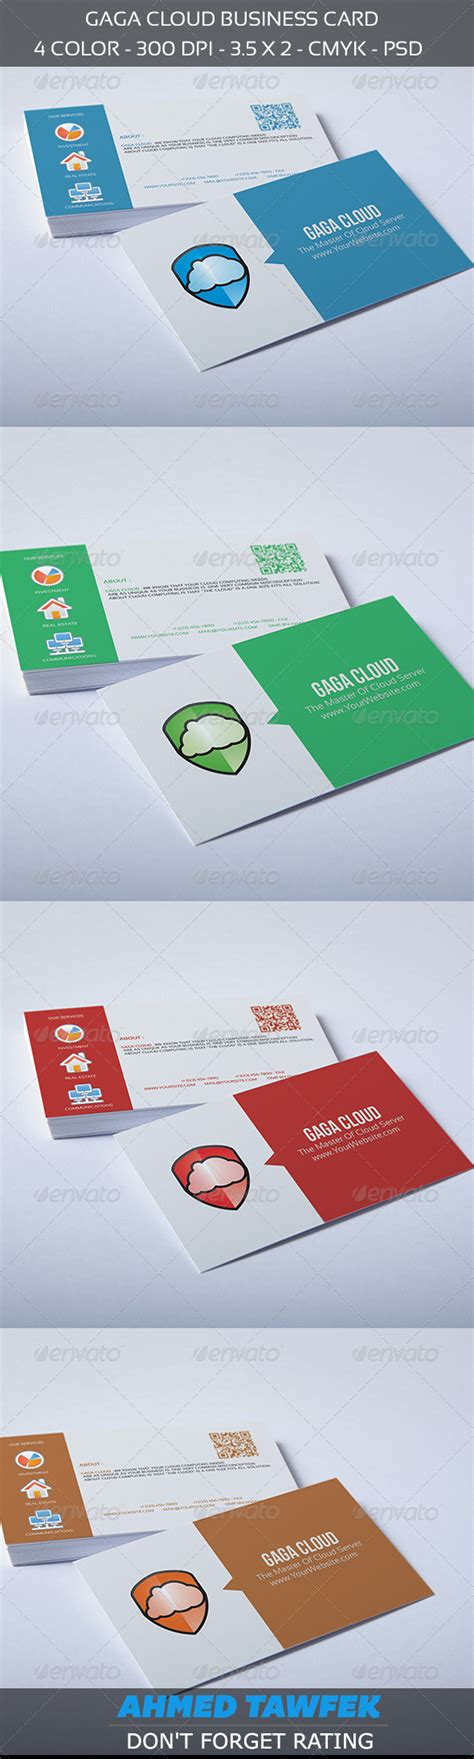 cloud business card template cloud business card print templates 187 tinkytyler org